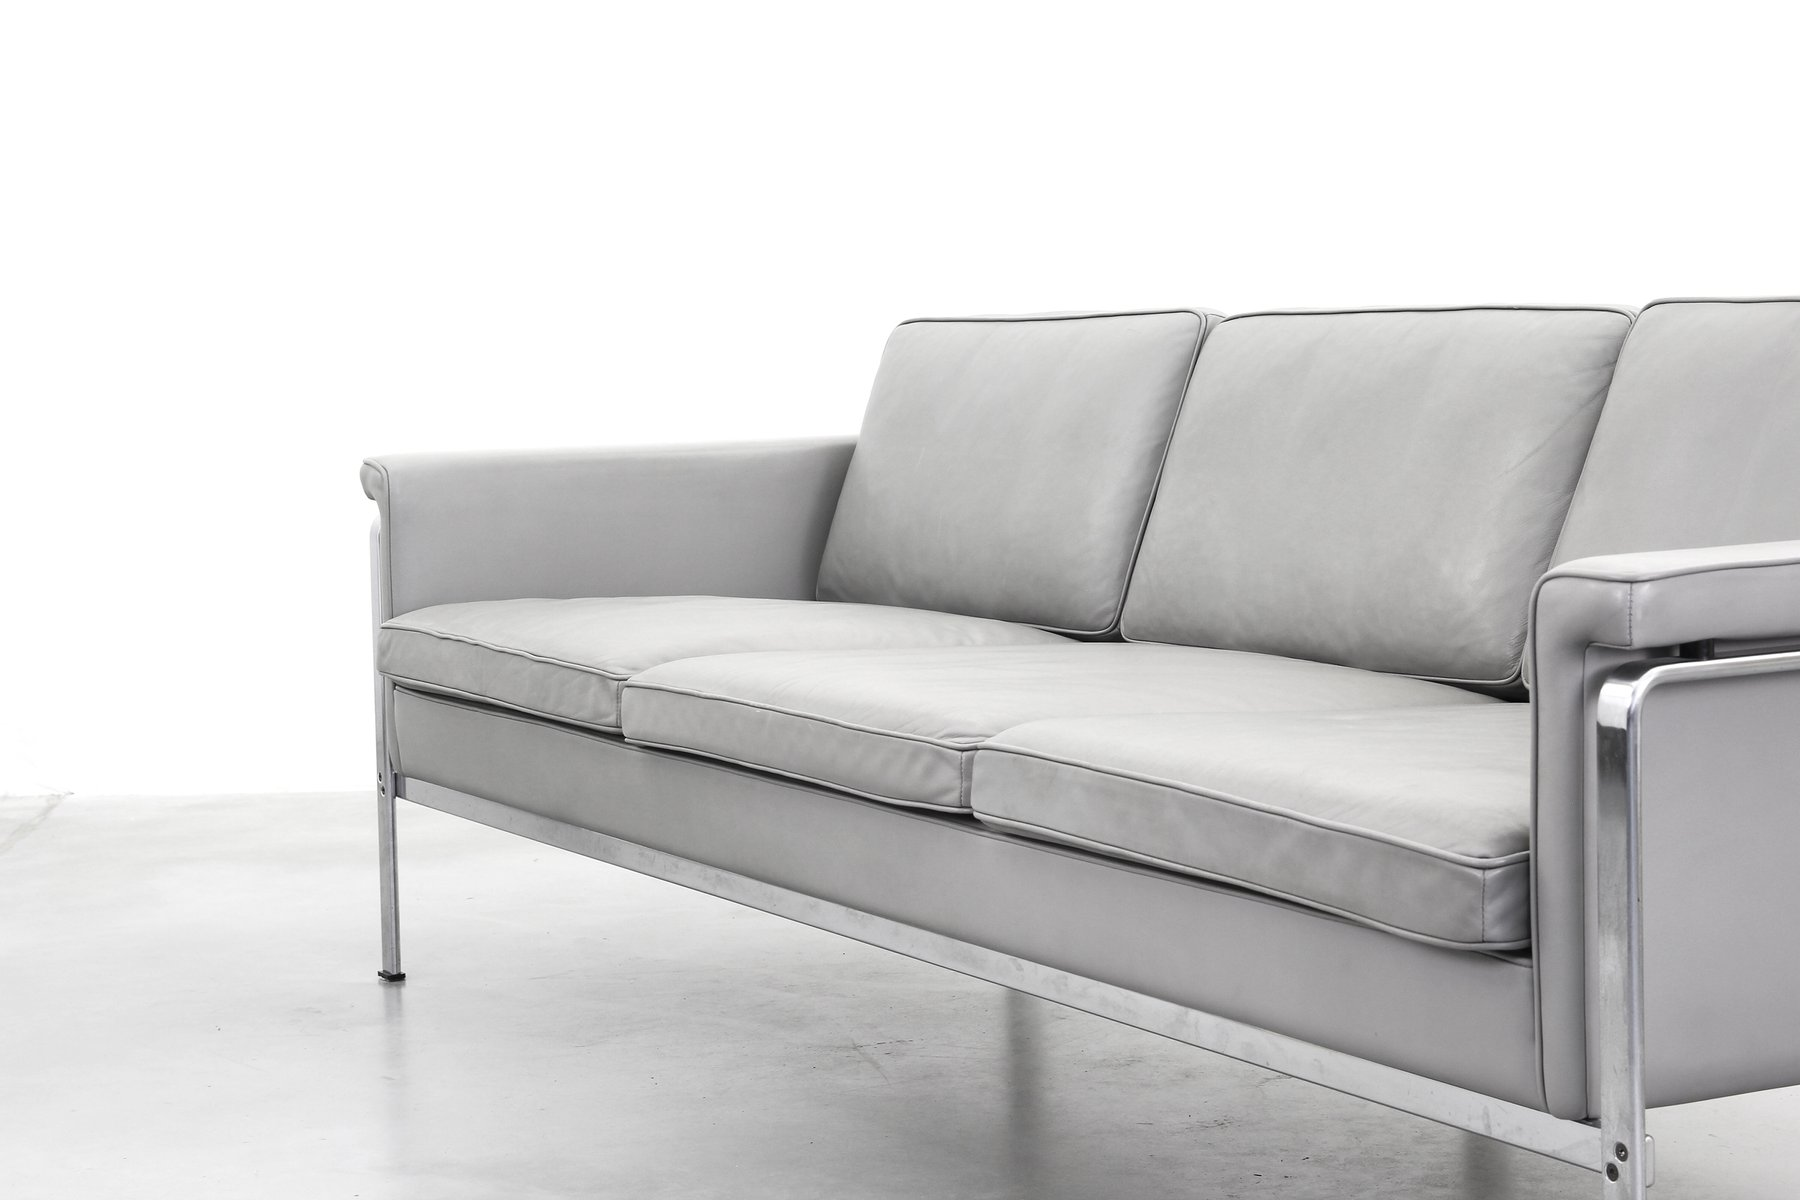 Grey Sofa By Horst Brüning For Kill International, 1970s For Sale At Pamono